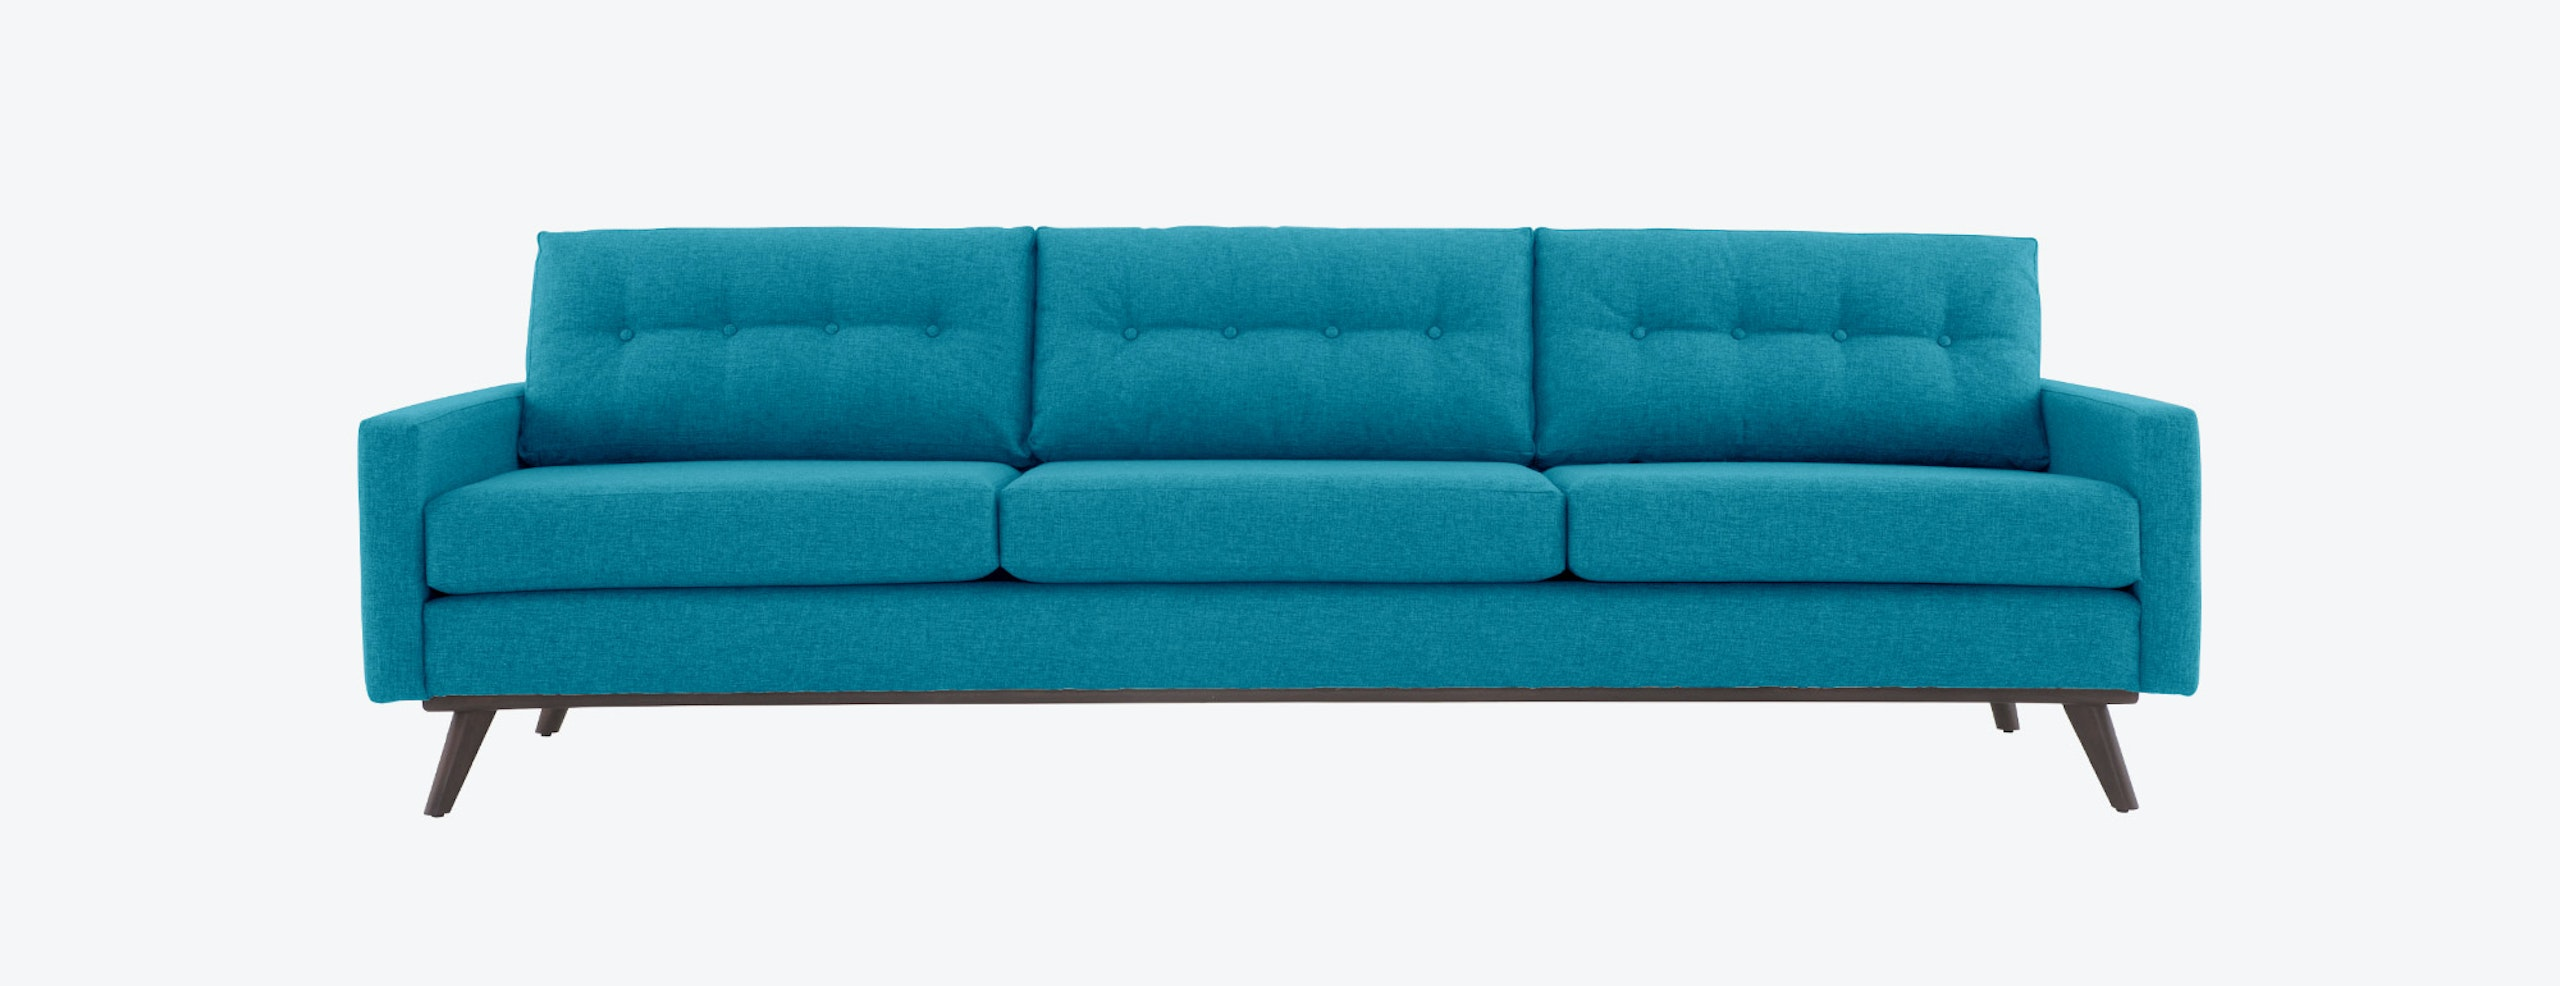 mid-century modern sofa couch